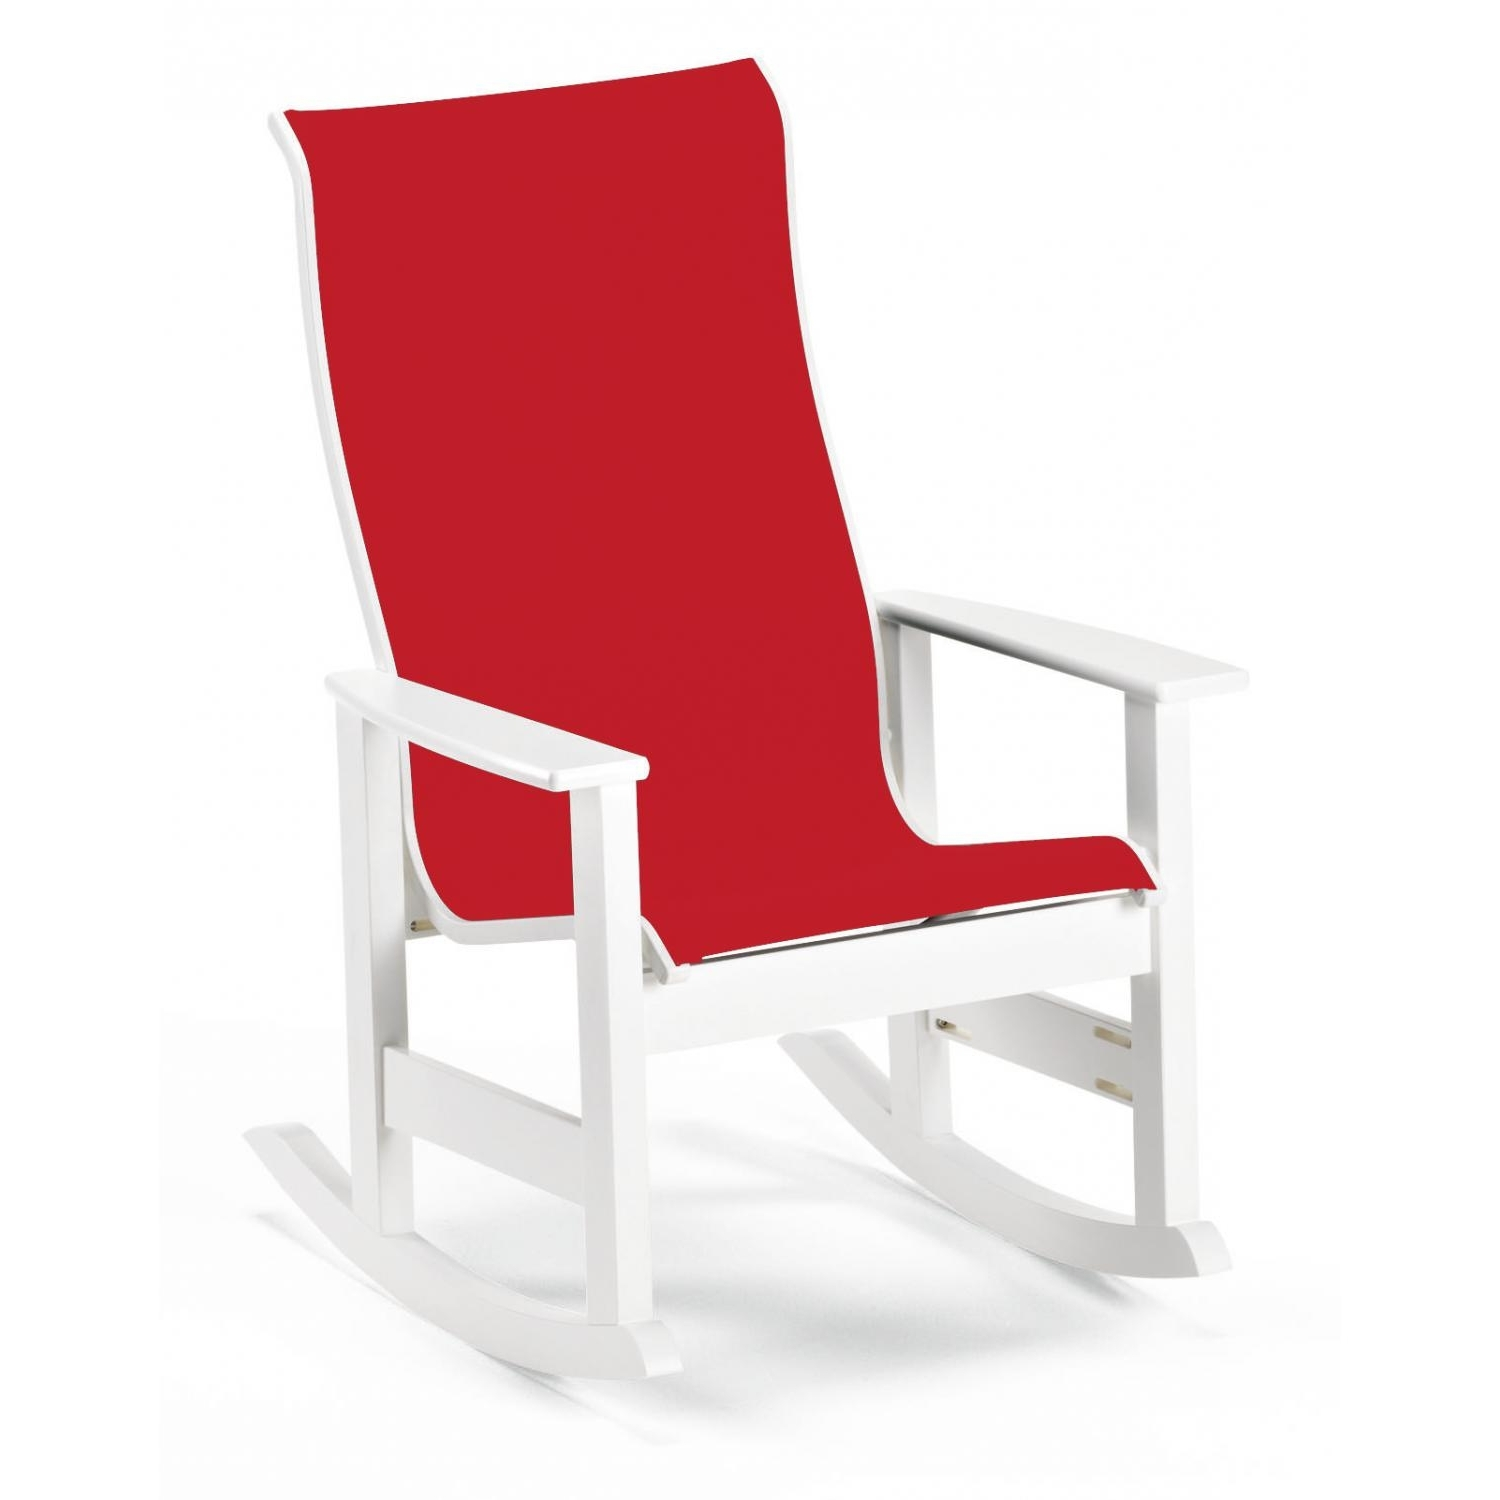 2017 Red Patio Rocking Chairs Pertaining To Leeward Supreme Mgp Patio Rocking Chair With Sling Seating (Gallery 14 of 15)